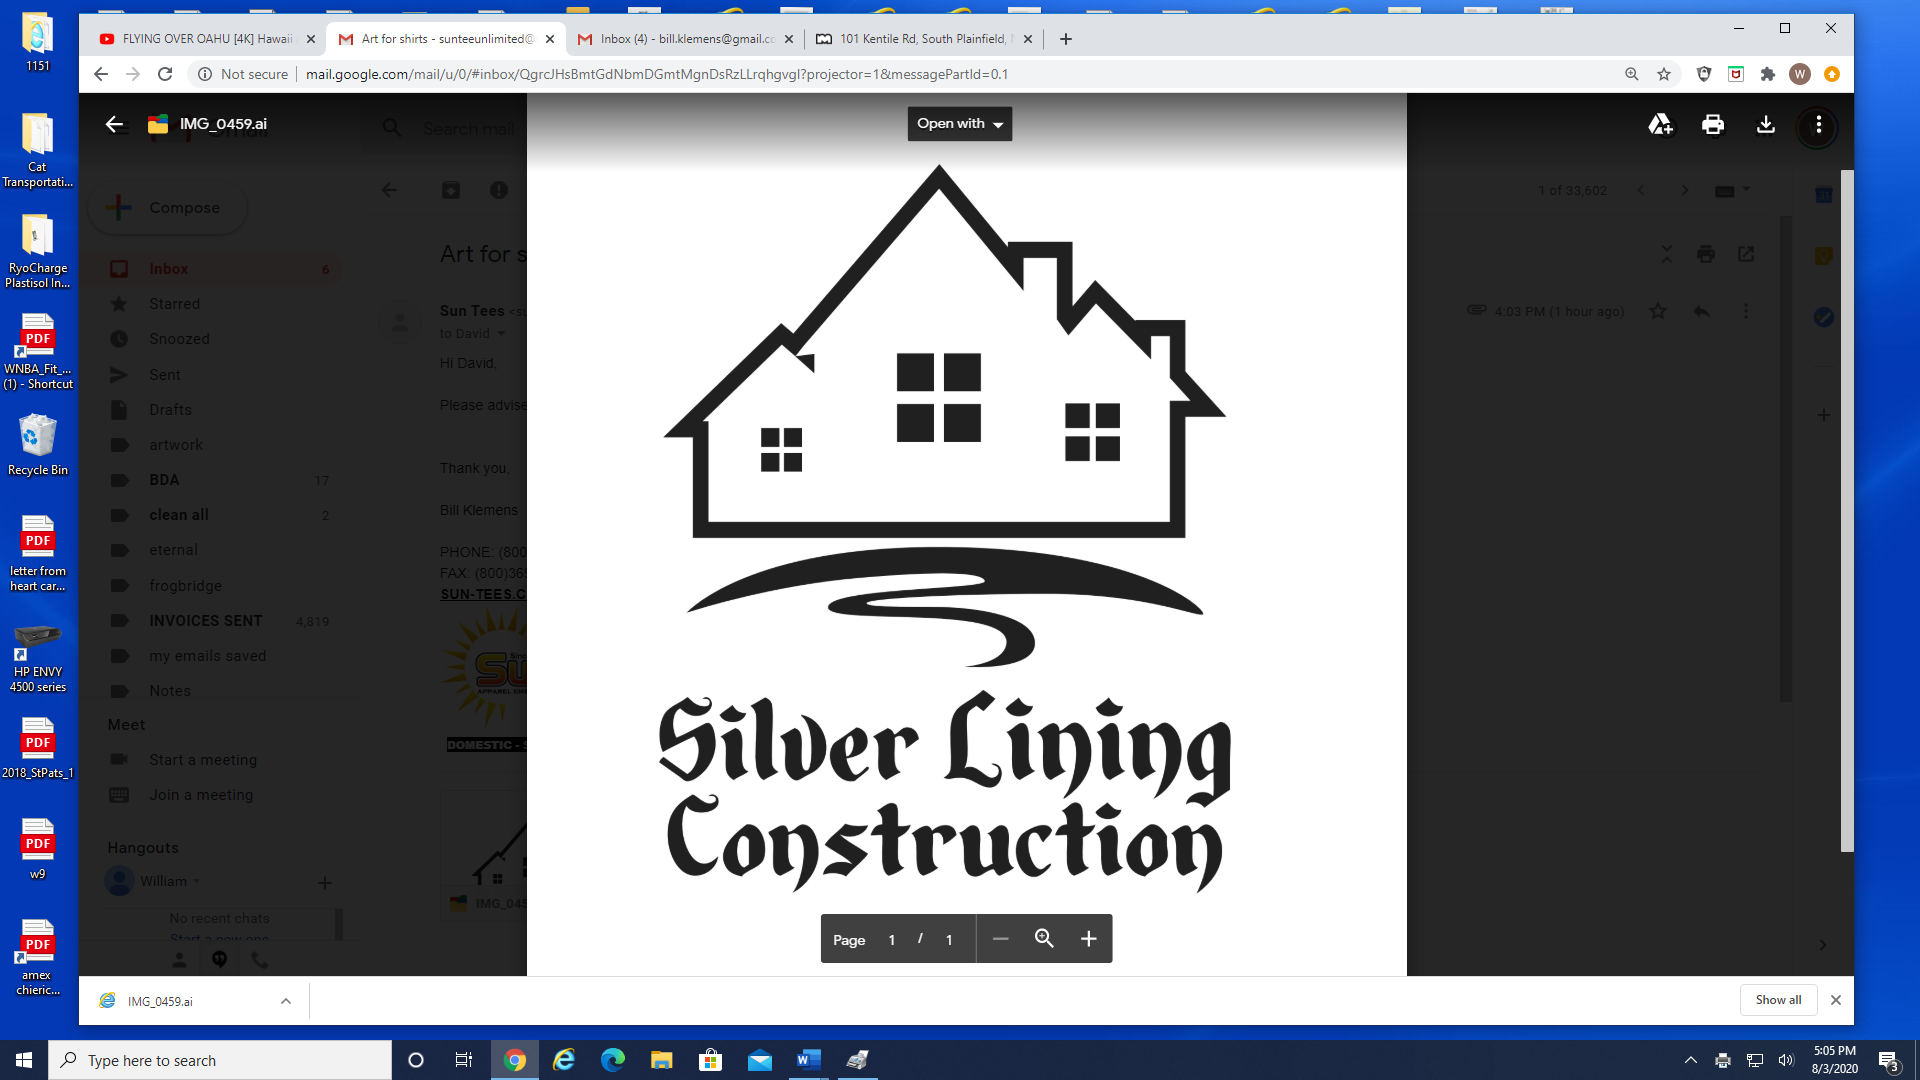 Silver Lining Construction